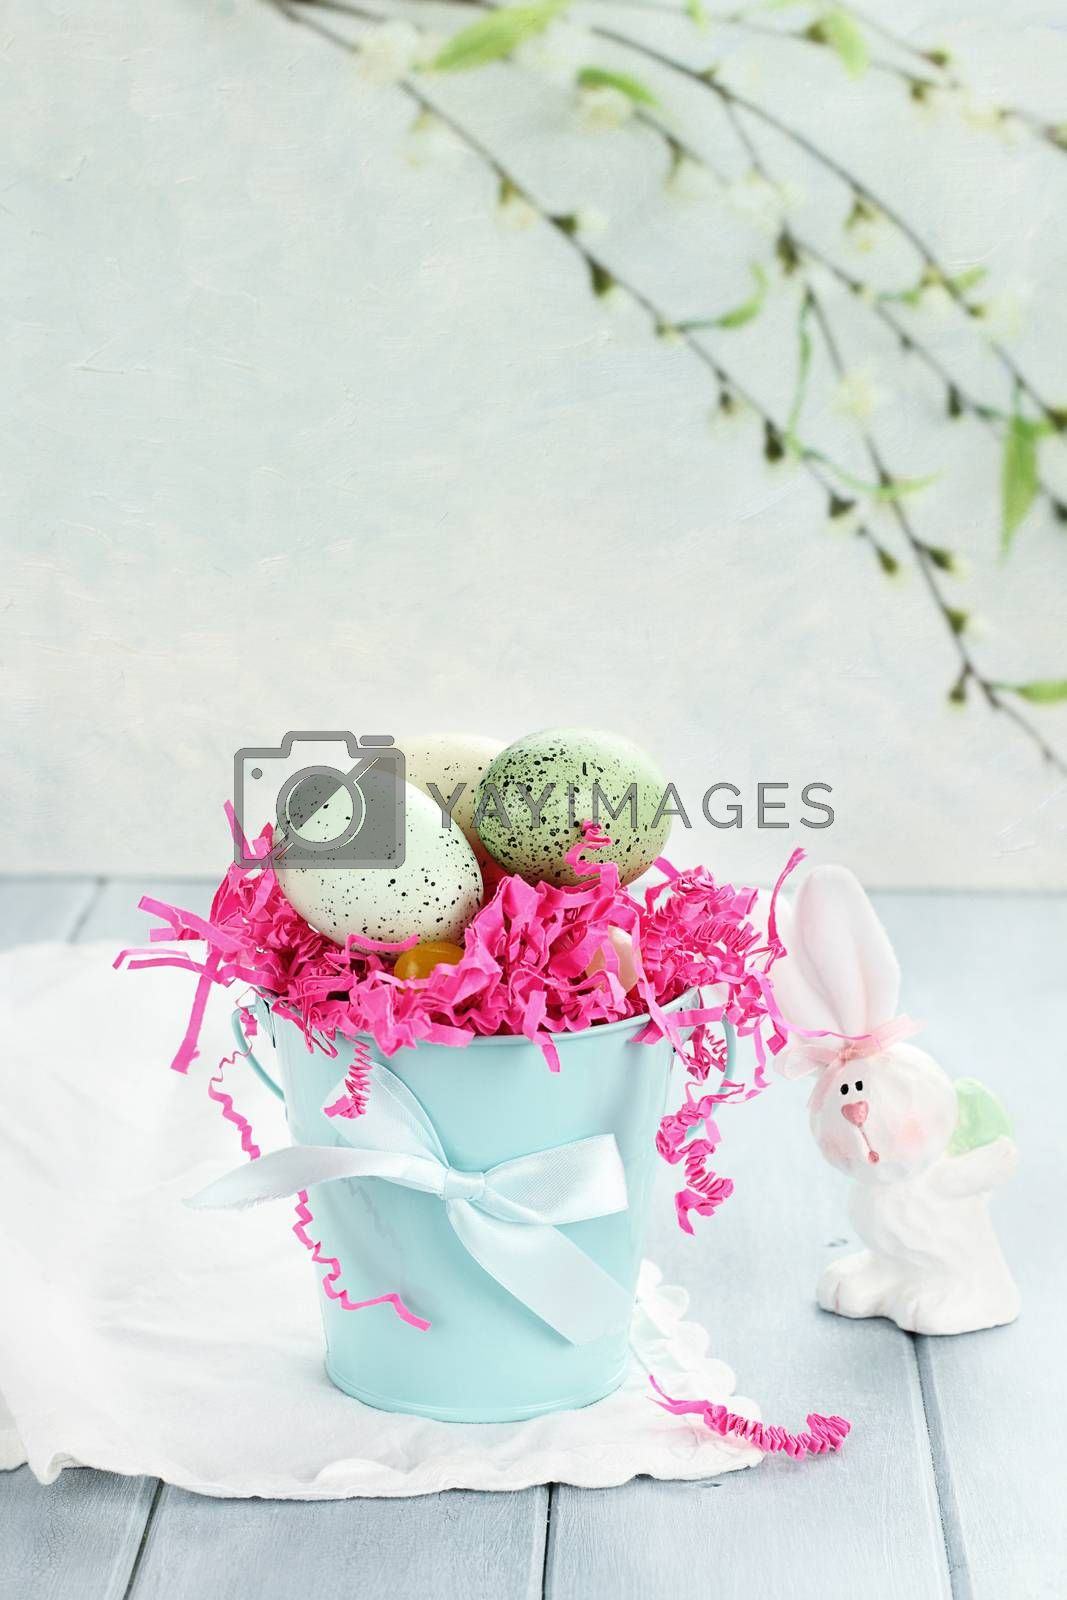 Royalty free image of Easter Eggs by StephanieFrey